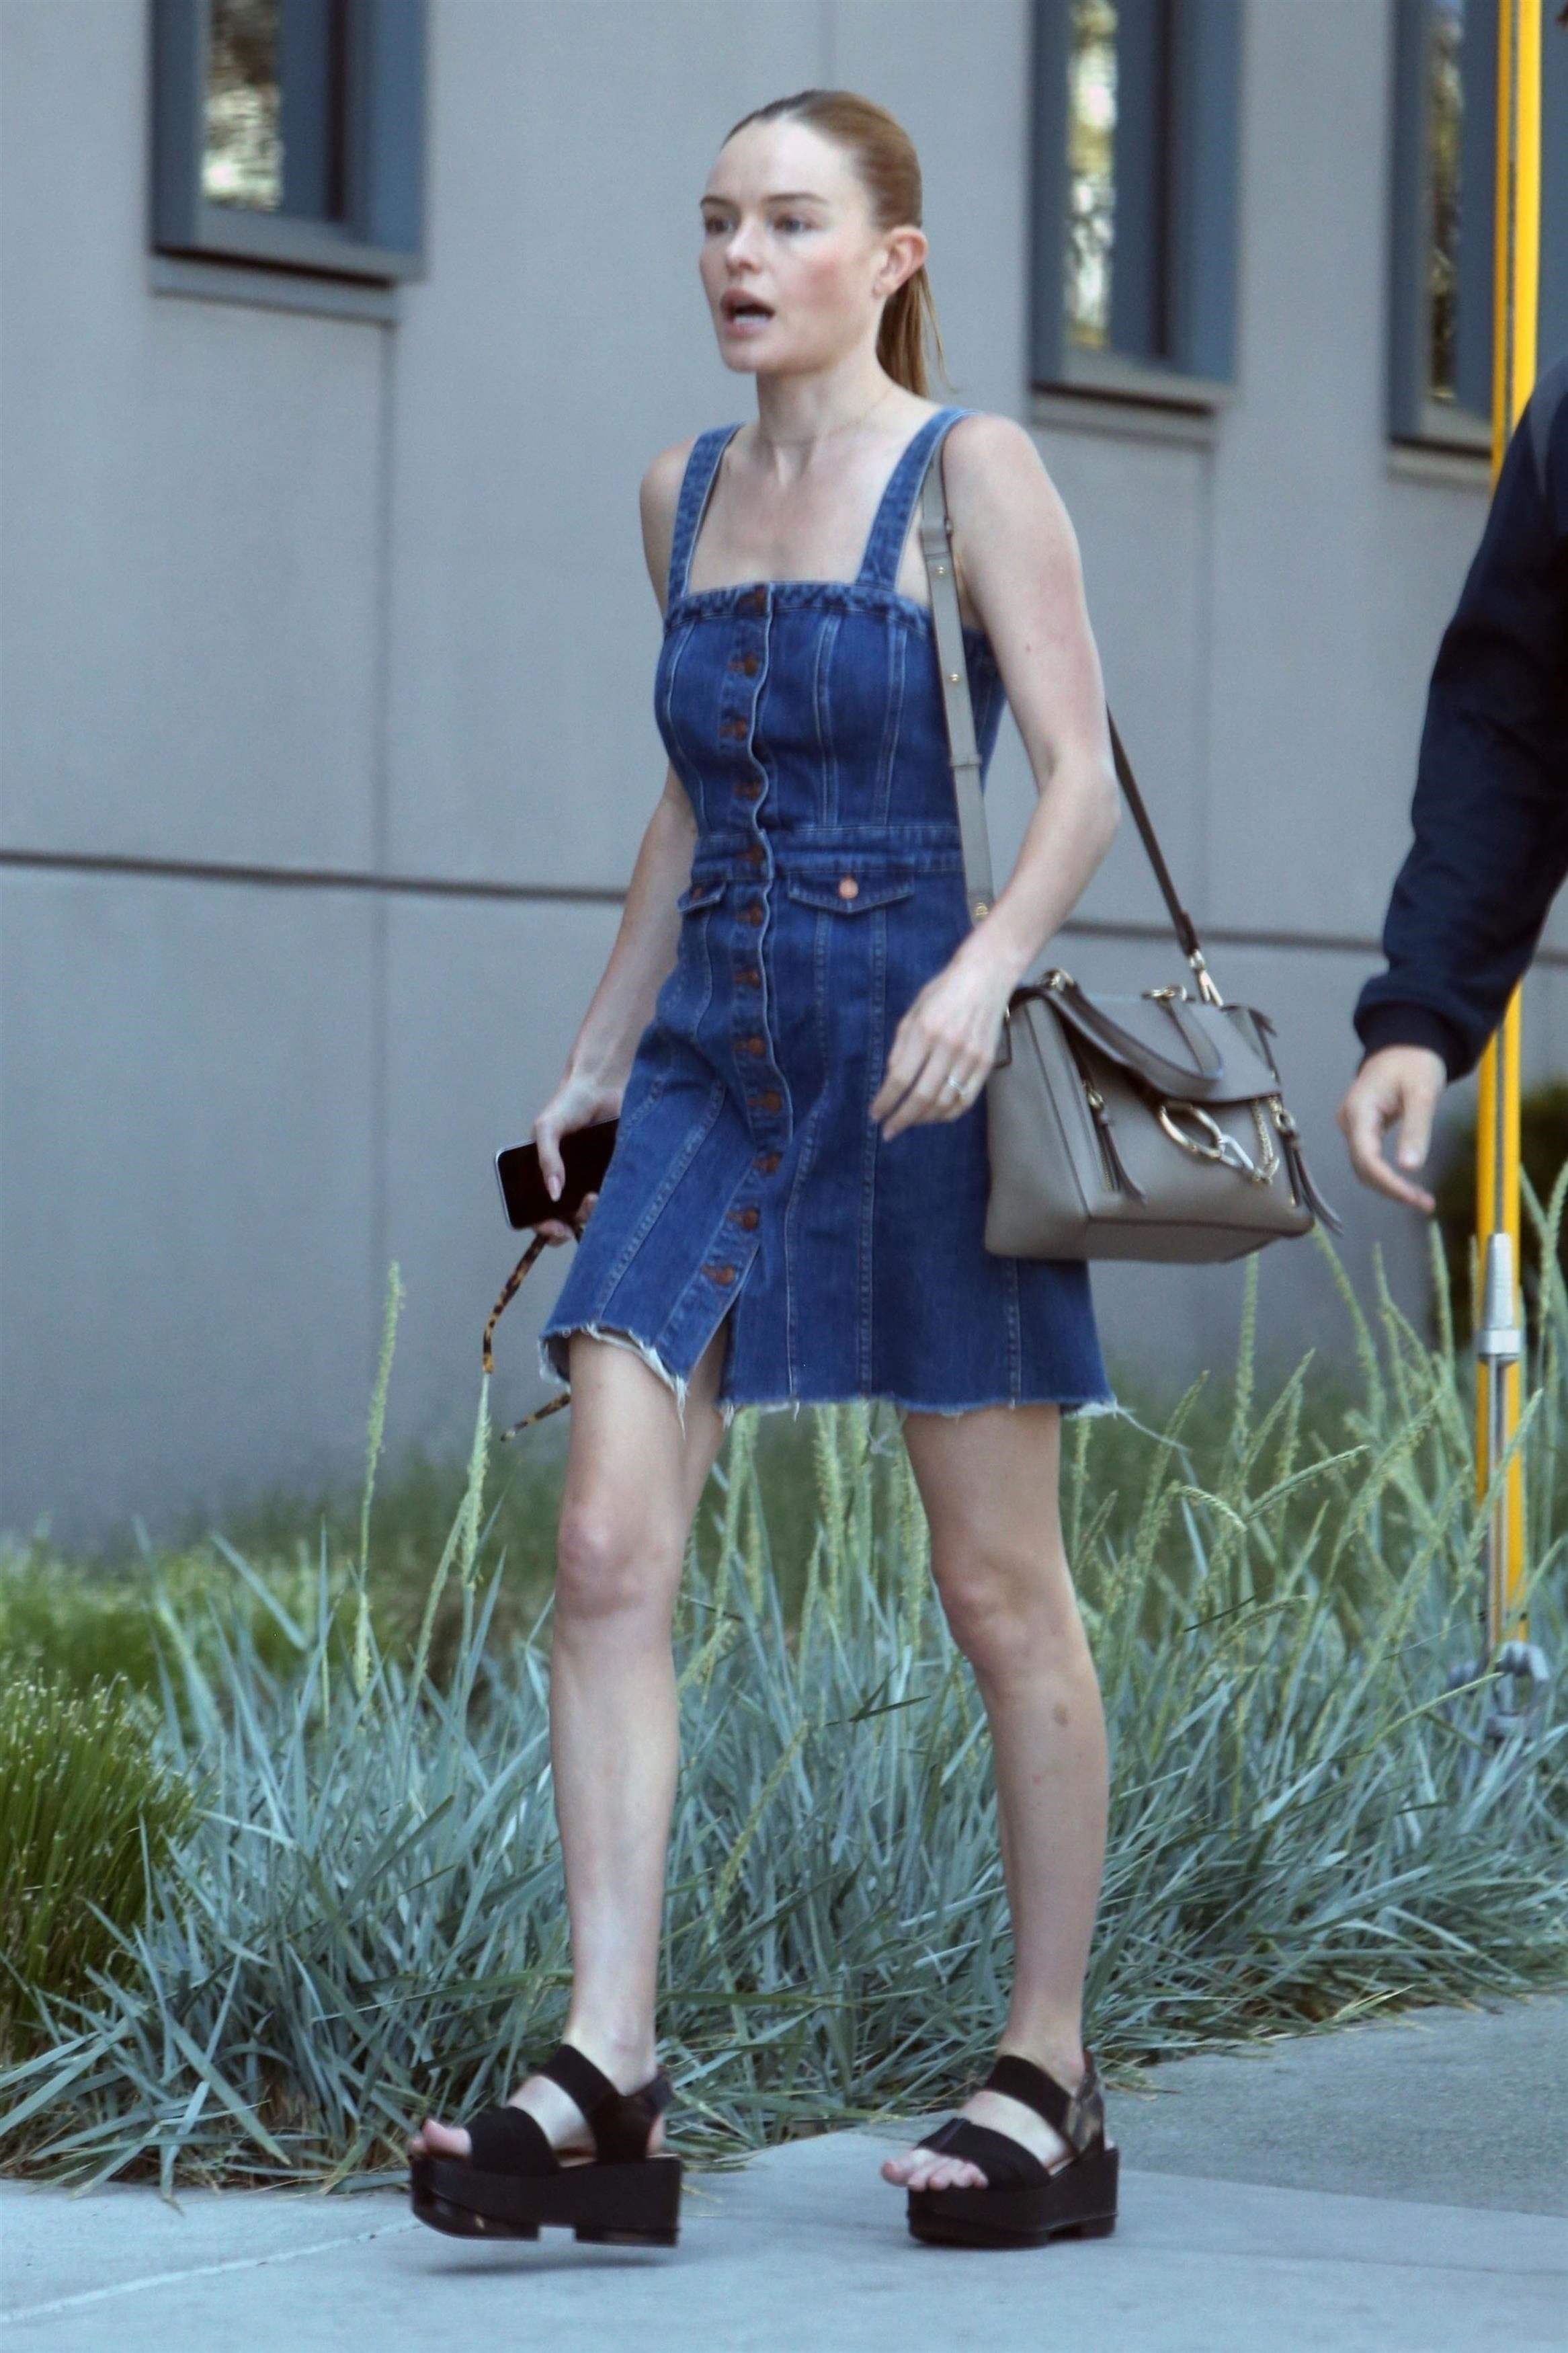 Hollywood, CA  - *EXCLUSIVE*  - Actress Kate Bosworth and a friend stop by the Viacom offices for a meeting in Hollywood. Kate looked cute in a denim dress and black platform sandals.  Pictured: Kate Bosworth    *UK Clients - Pictures Containing Children Please Pixelate Face Prior To Publication*, Image: 368981565, License: Rights-managed, Restrictions: , Model Release: no, Credit line: Profimedia, AKM-GSI